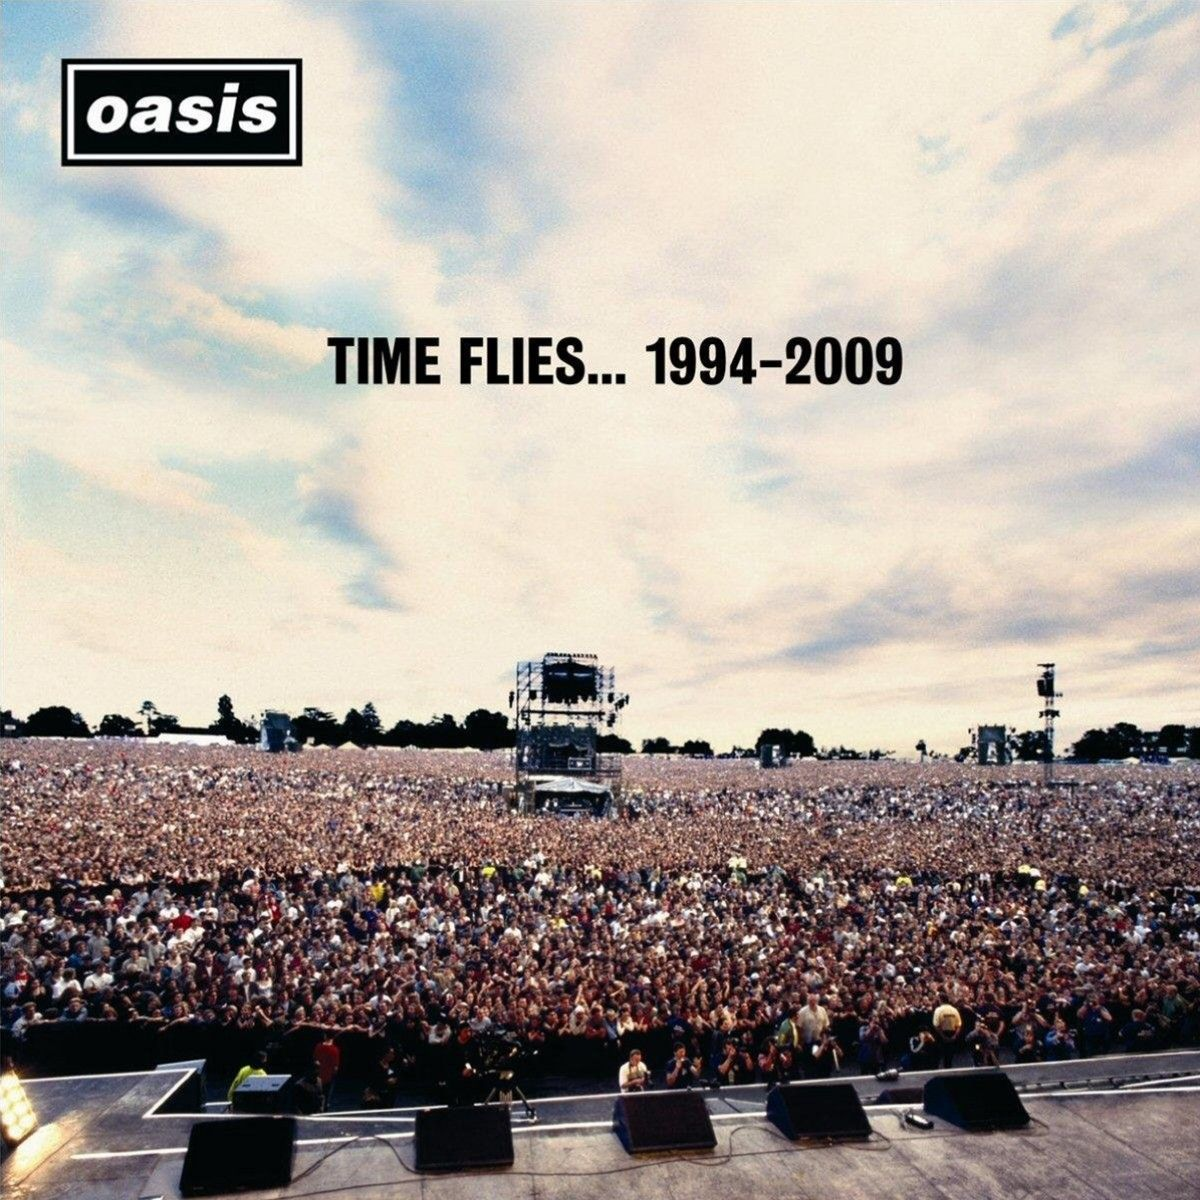 Oasis - Time Flies 1994-2009 album cover